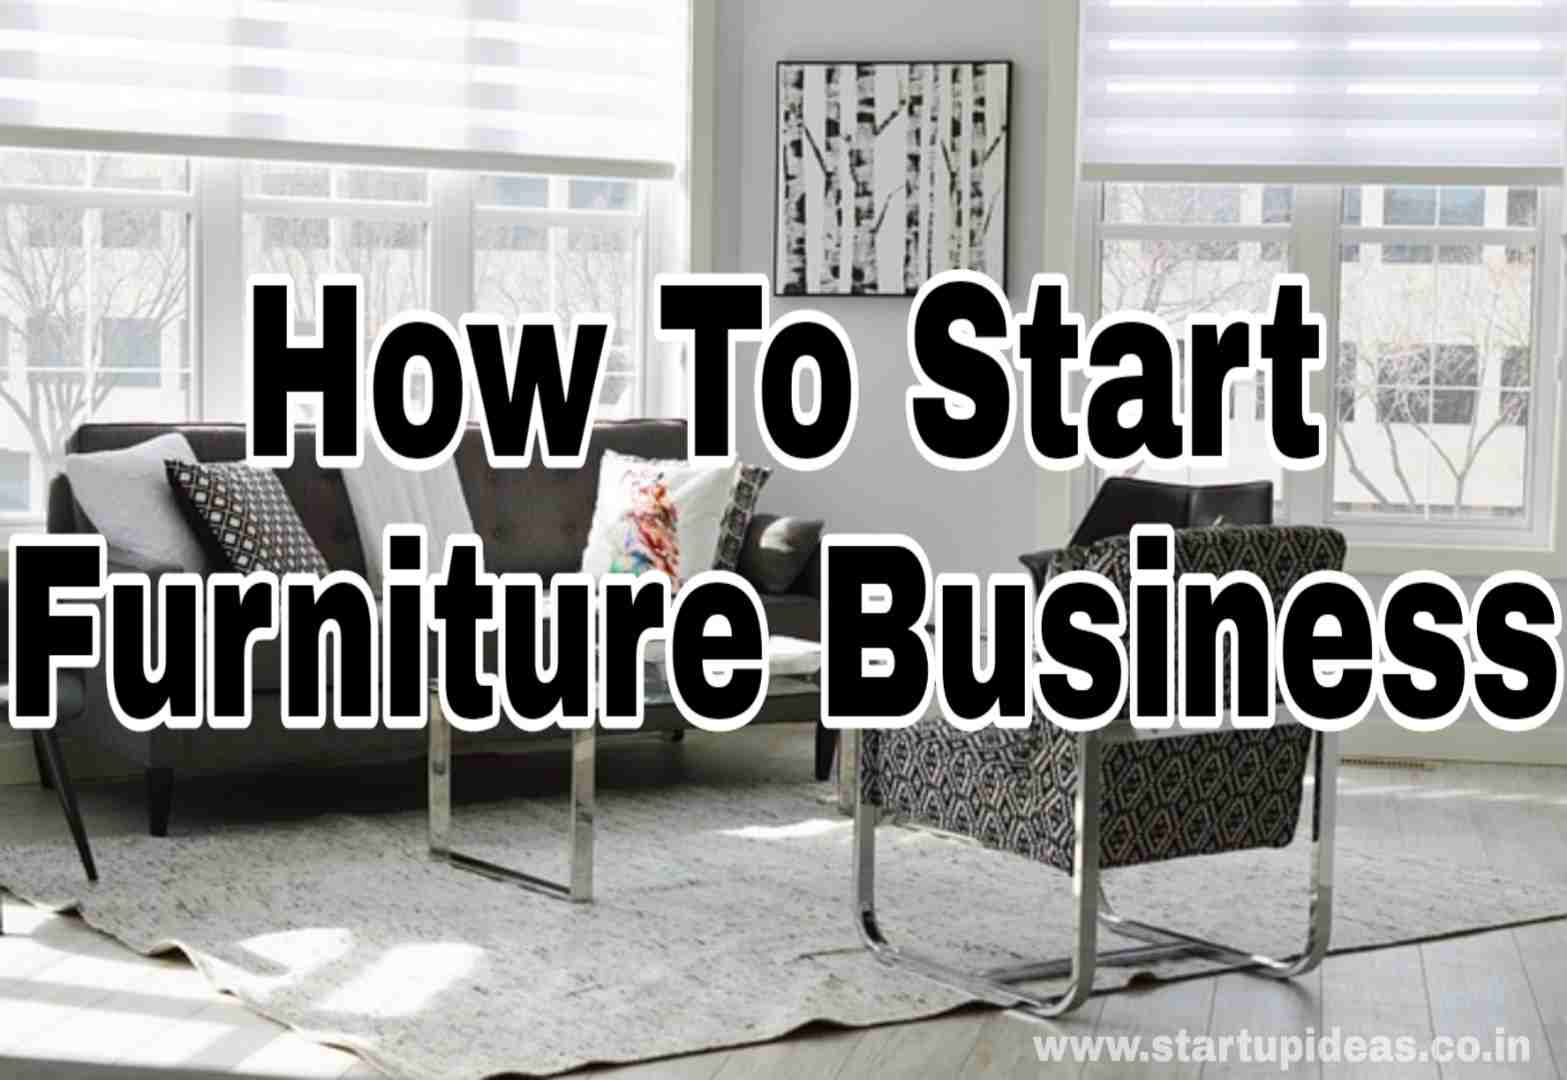 How To Start A Furniture Business Startup Ideas